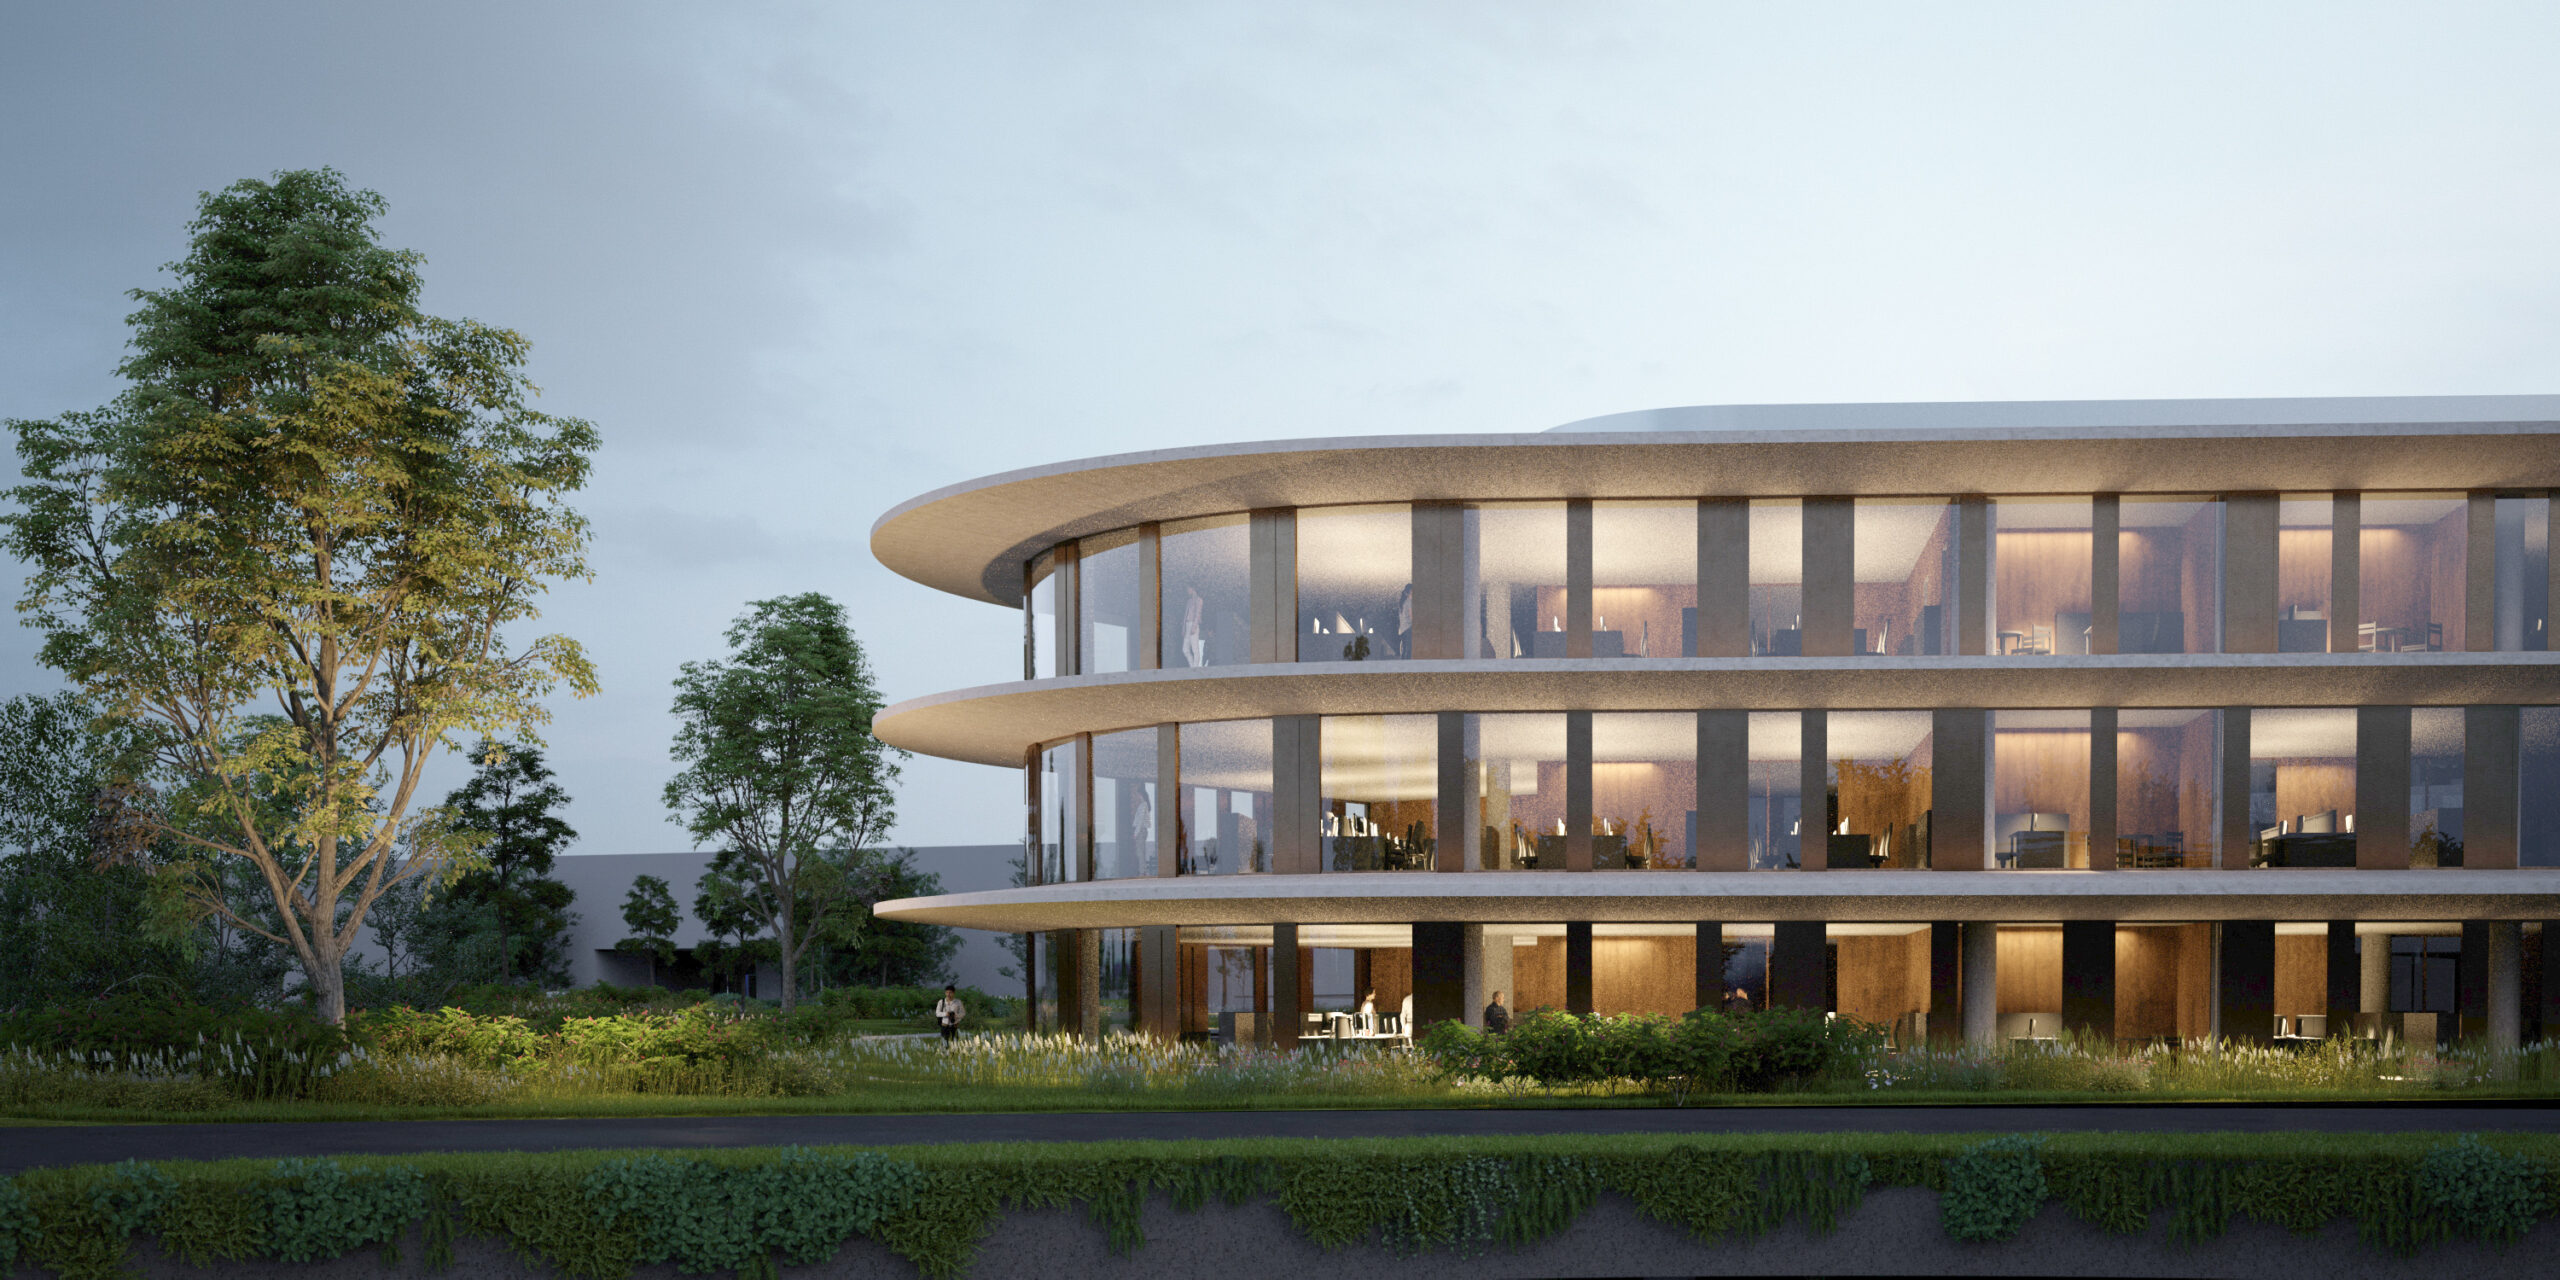 3LHD_285_Rimac_Campus_office_building_render_by_3LHD_10